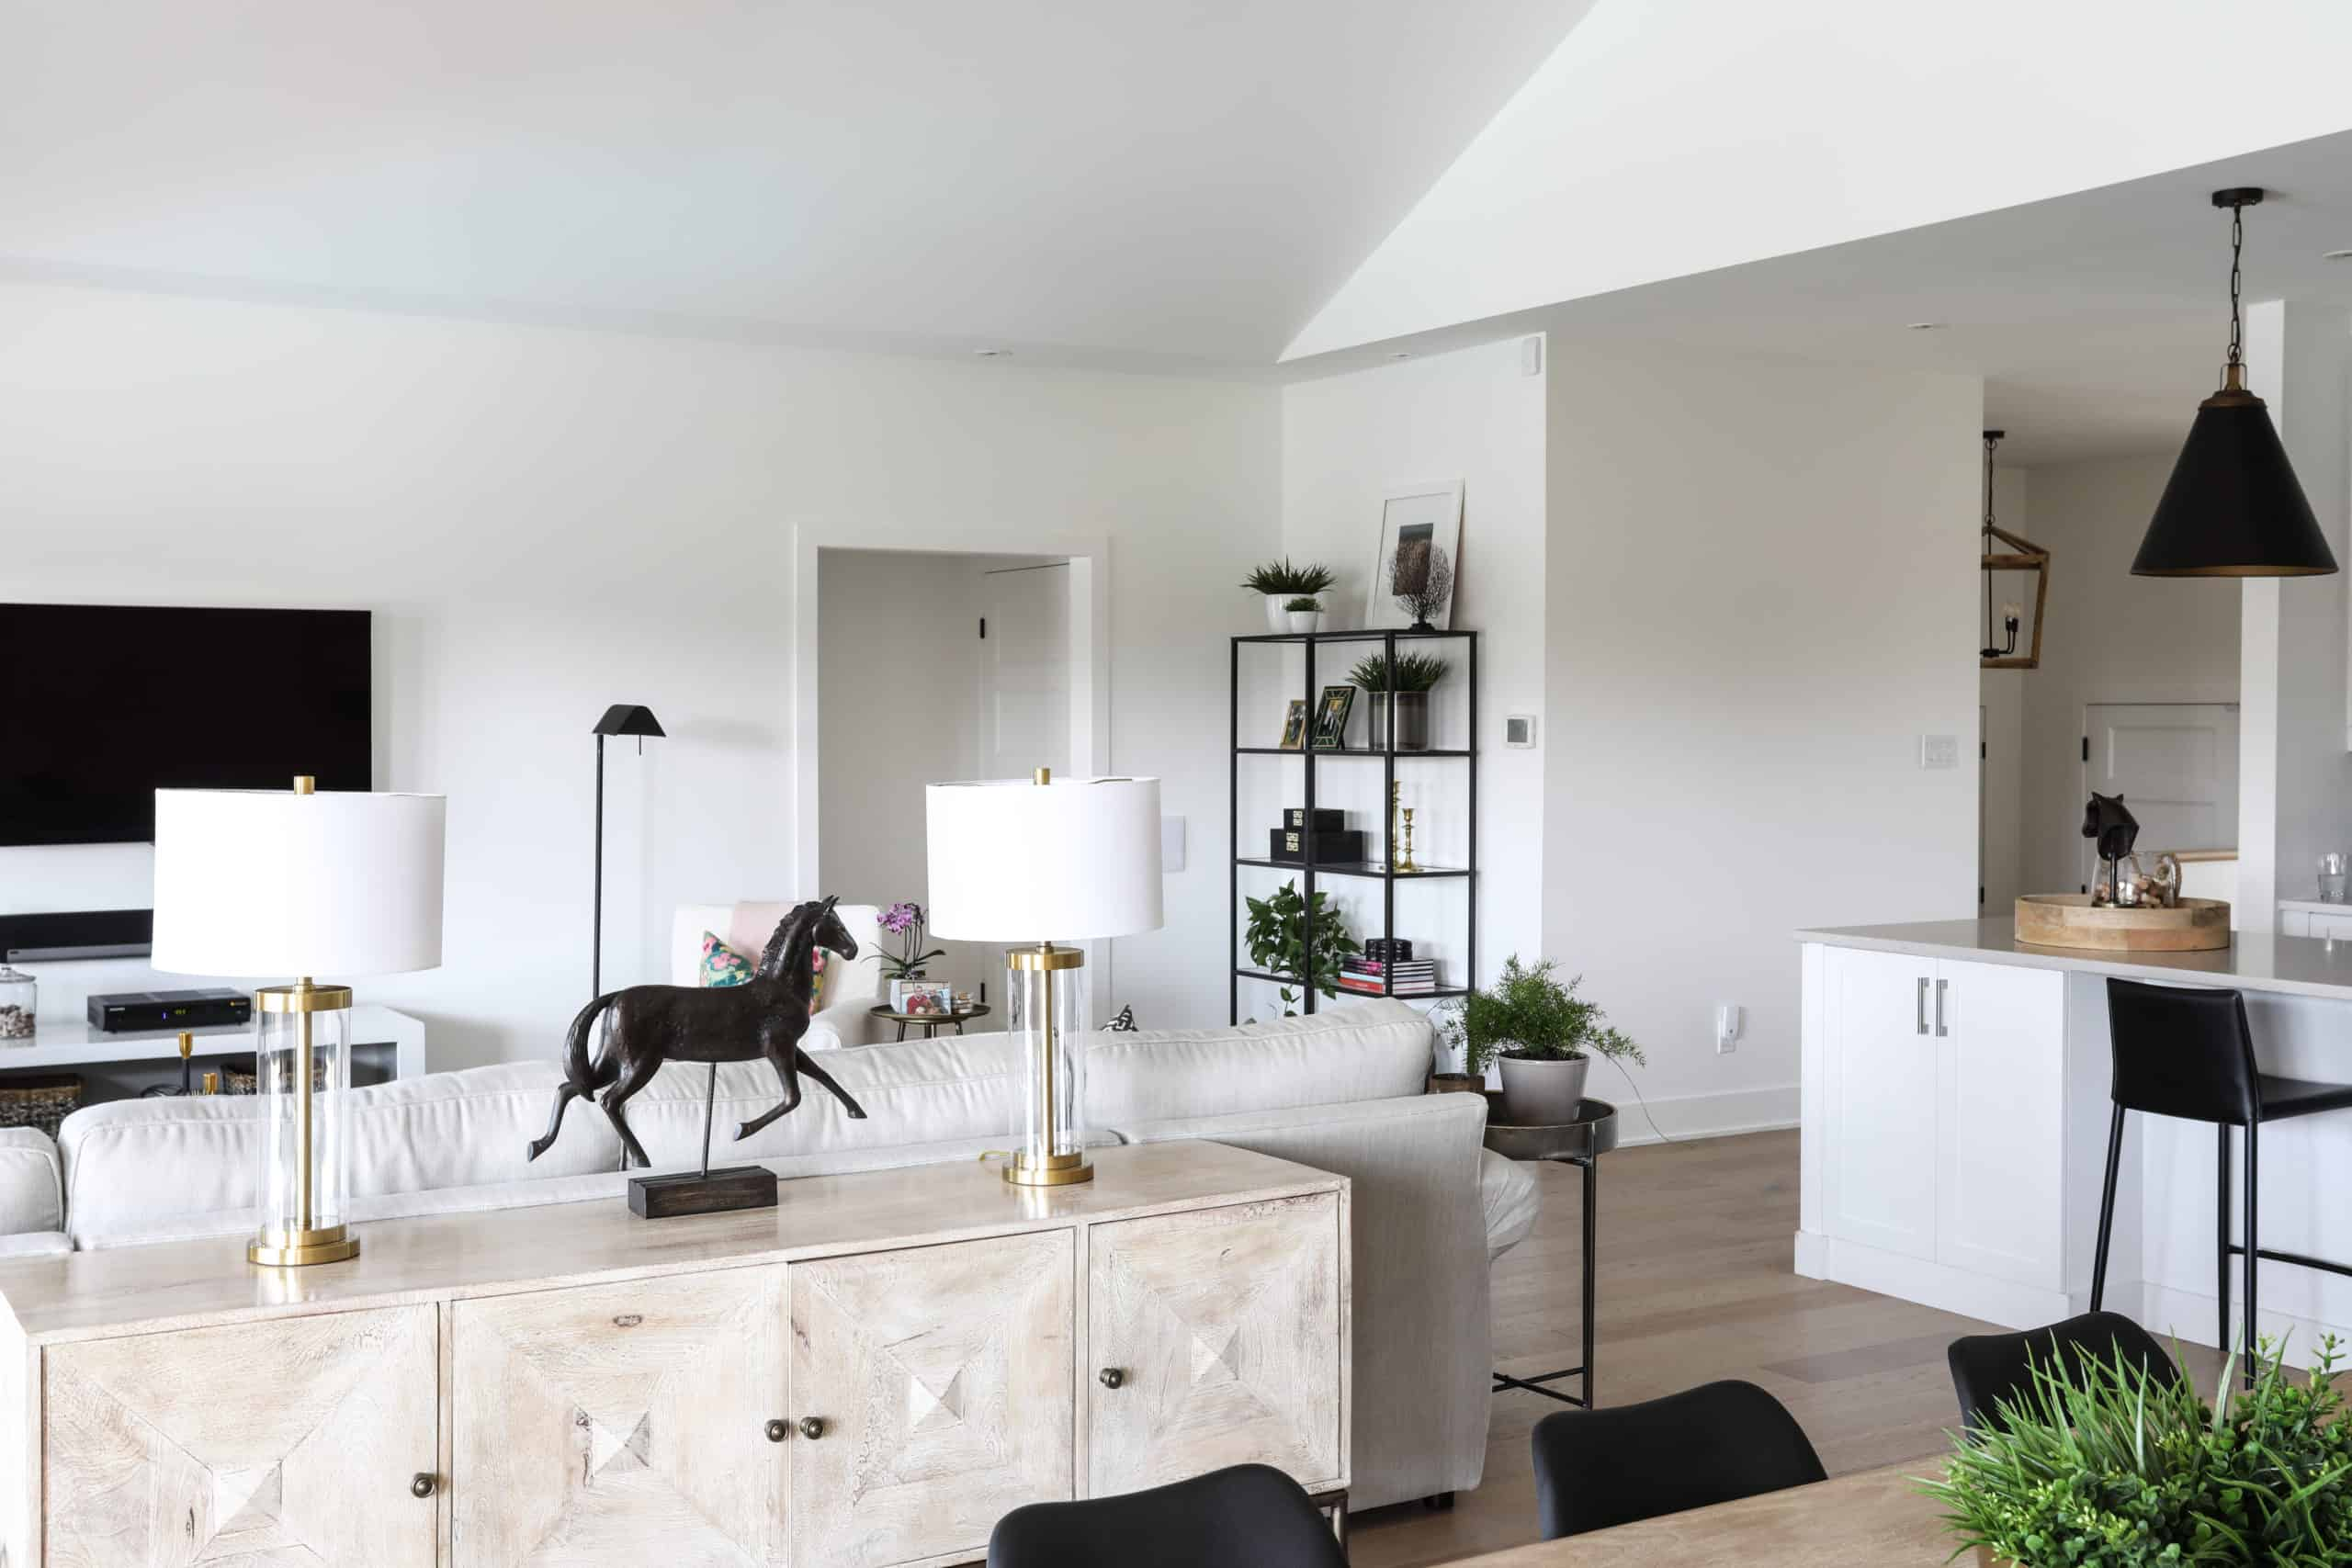 Black horse figure on a white, modern, short cupboard against a bright white couch